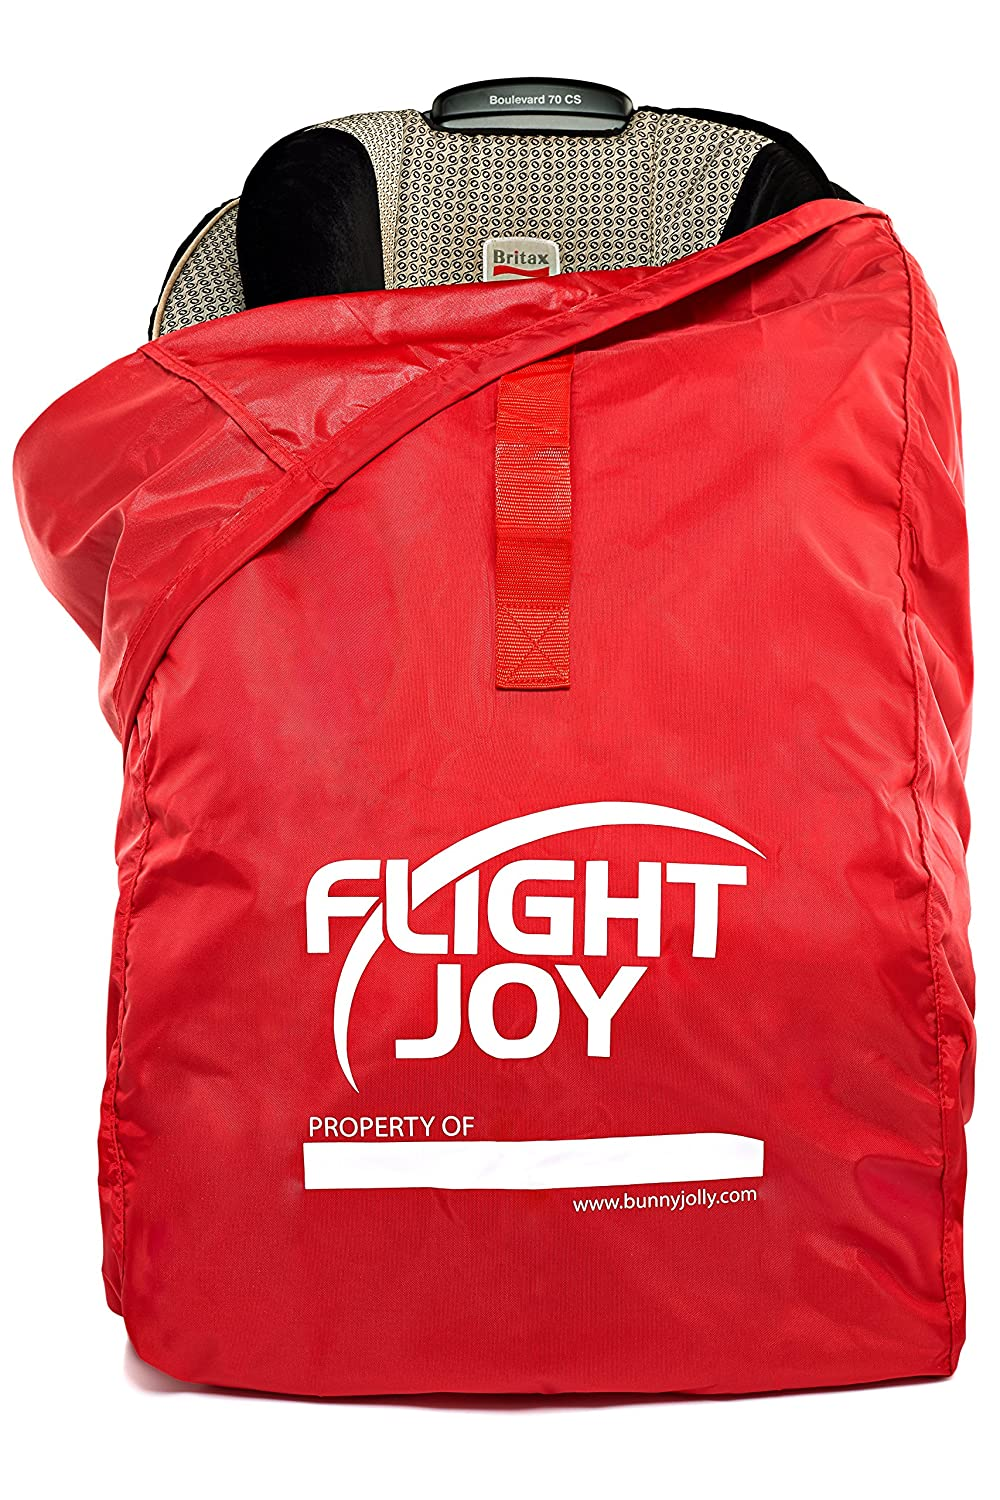 Amazon.com : FlightJoy Car Seat Travel Bag - Best for Airport Gate ...